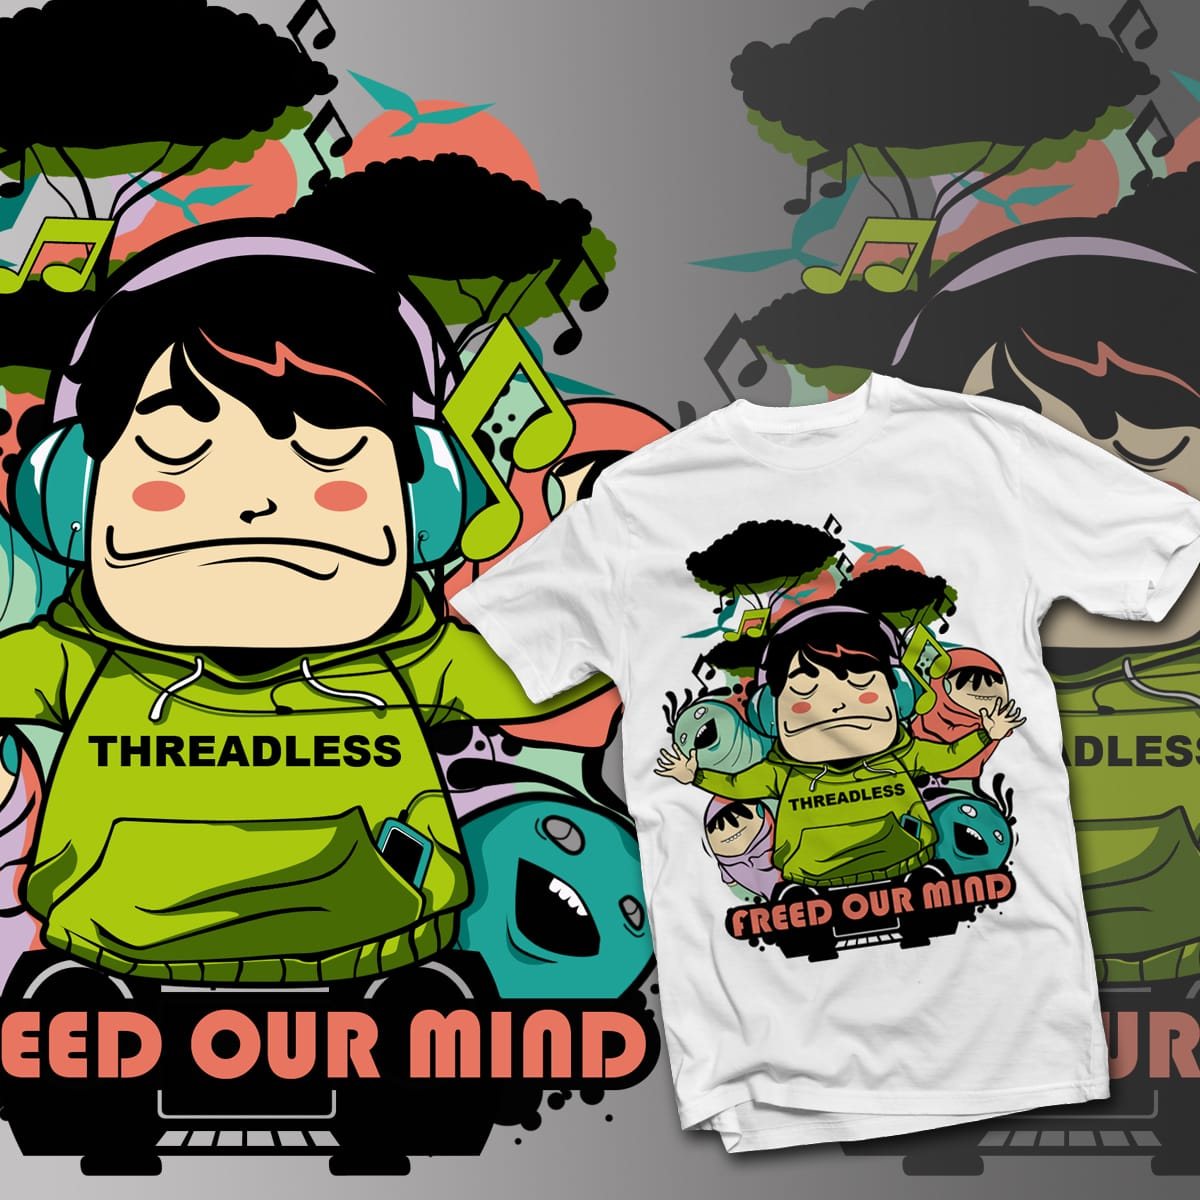 Free our mind by alang_banyu on Threadless